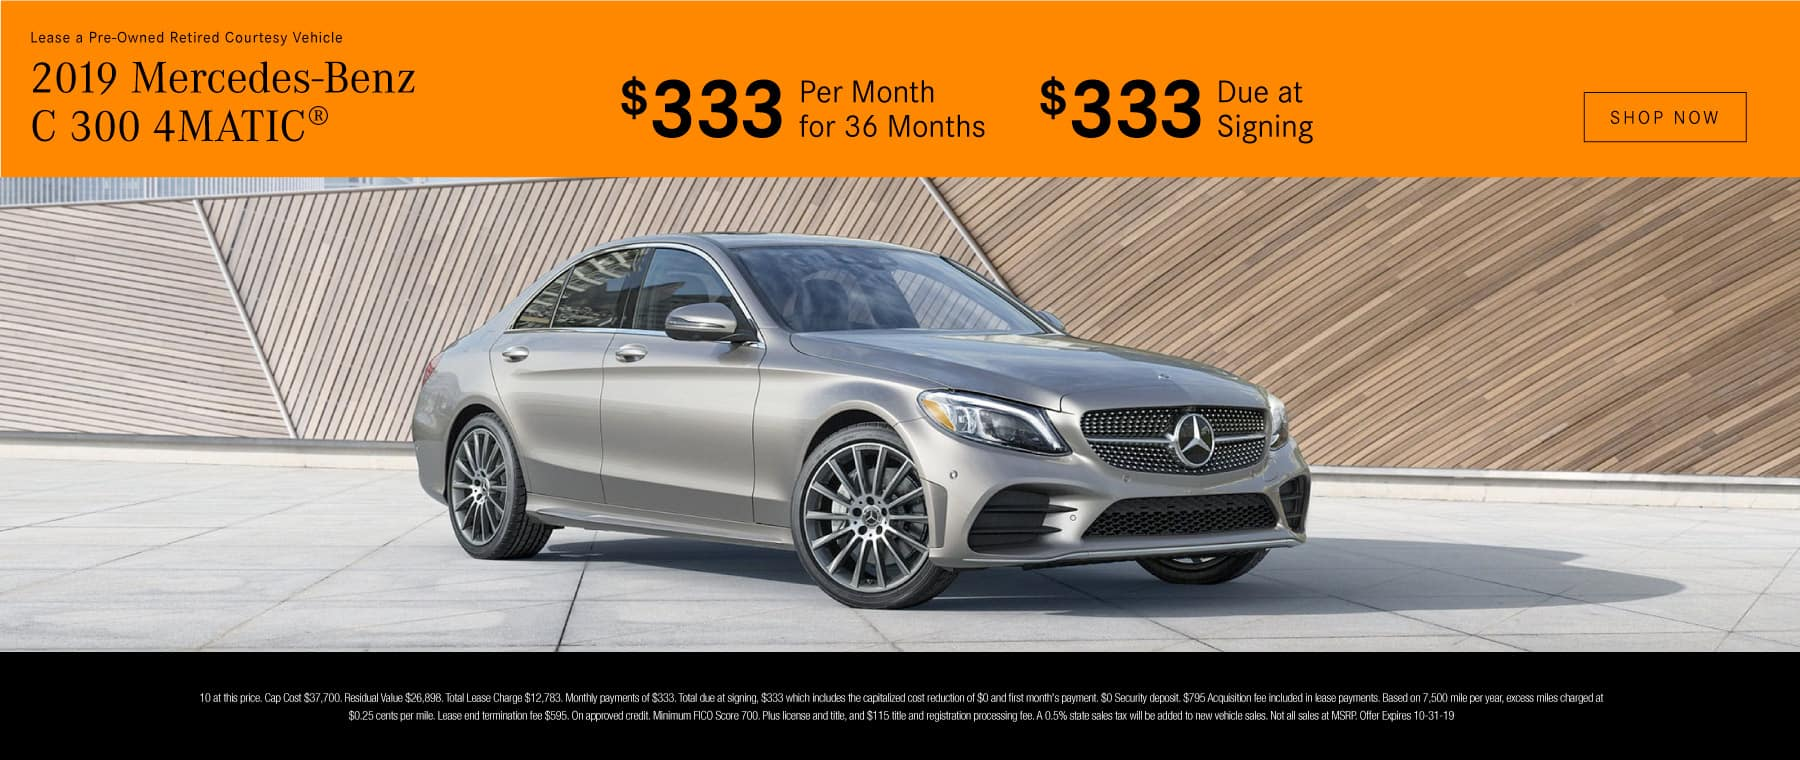 2019 C 300 4MATIC LEASE 333 / 36 MONTHS